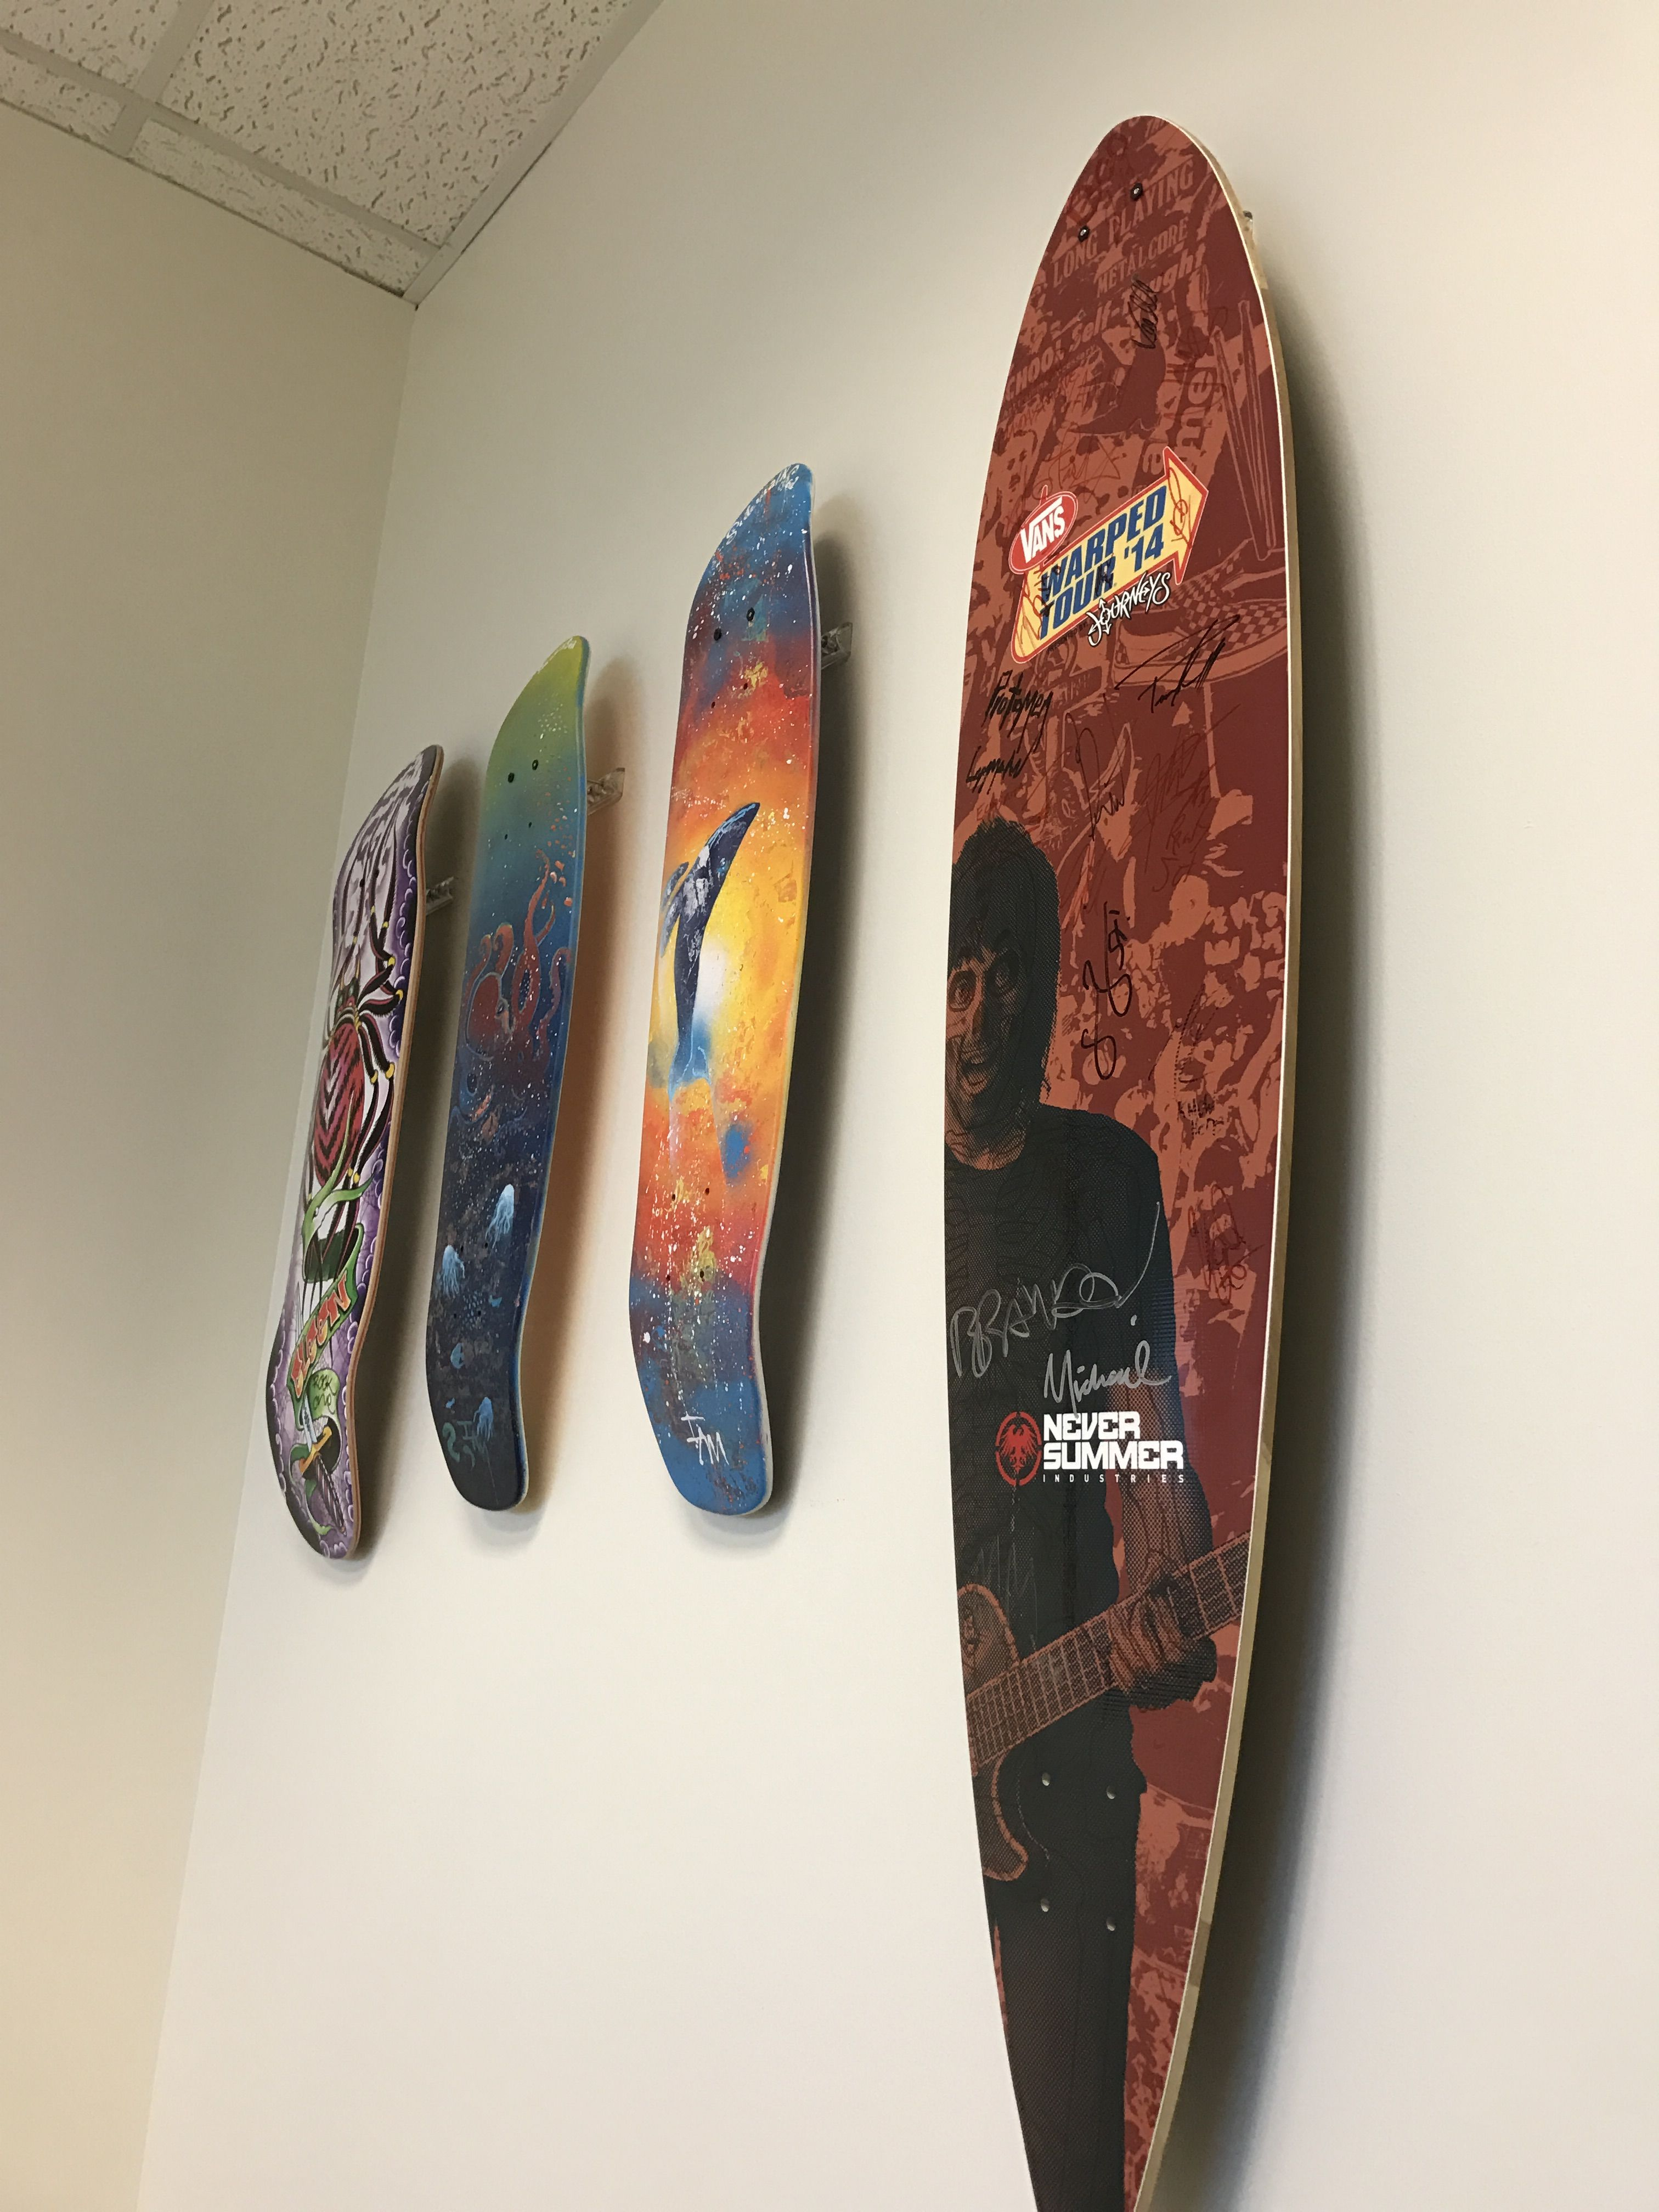 Turn Your Retired Skateboard Decks Into Art Hang Them Up With A Simple Wall Mount Skateboarddecor Skateboardrack Yourboard